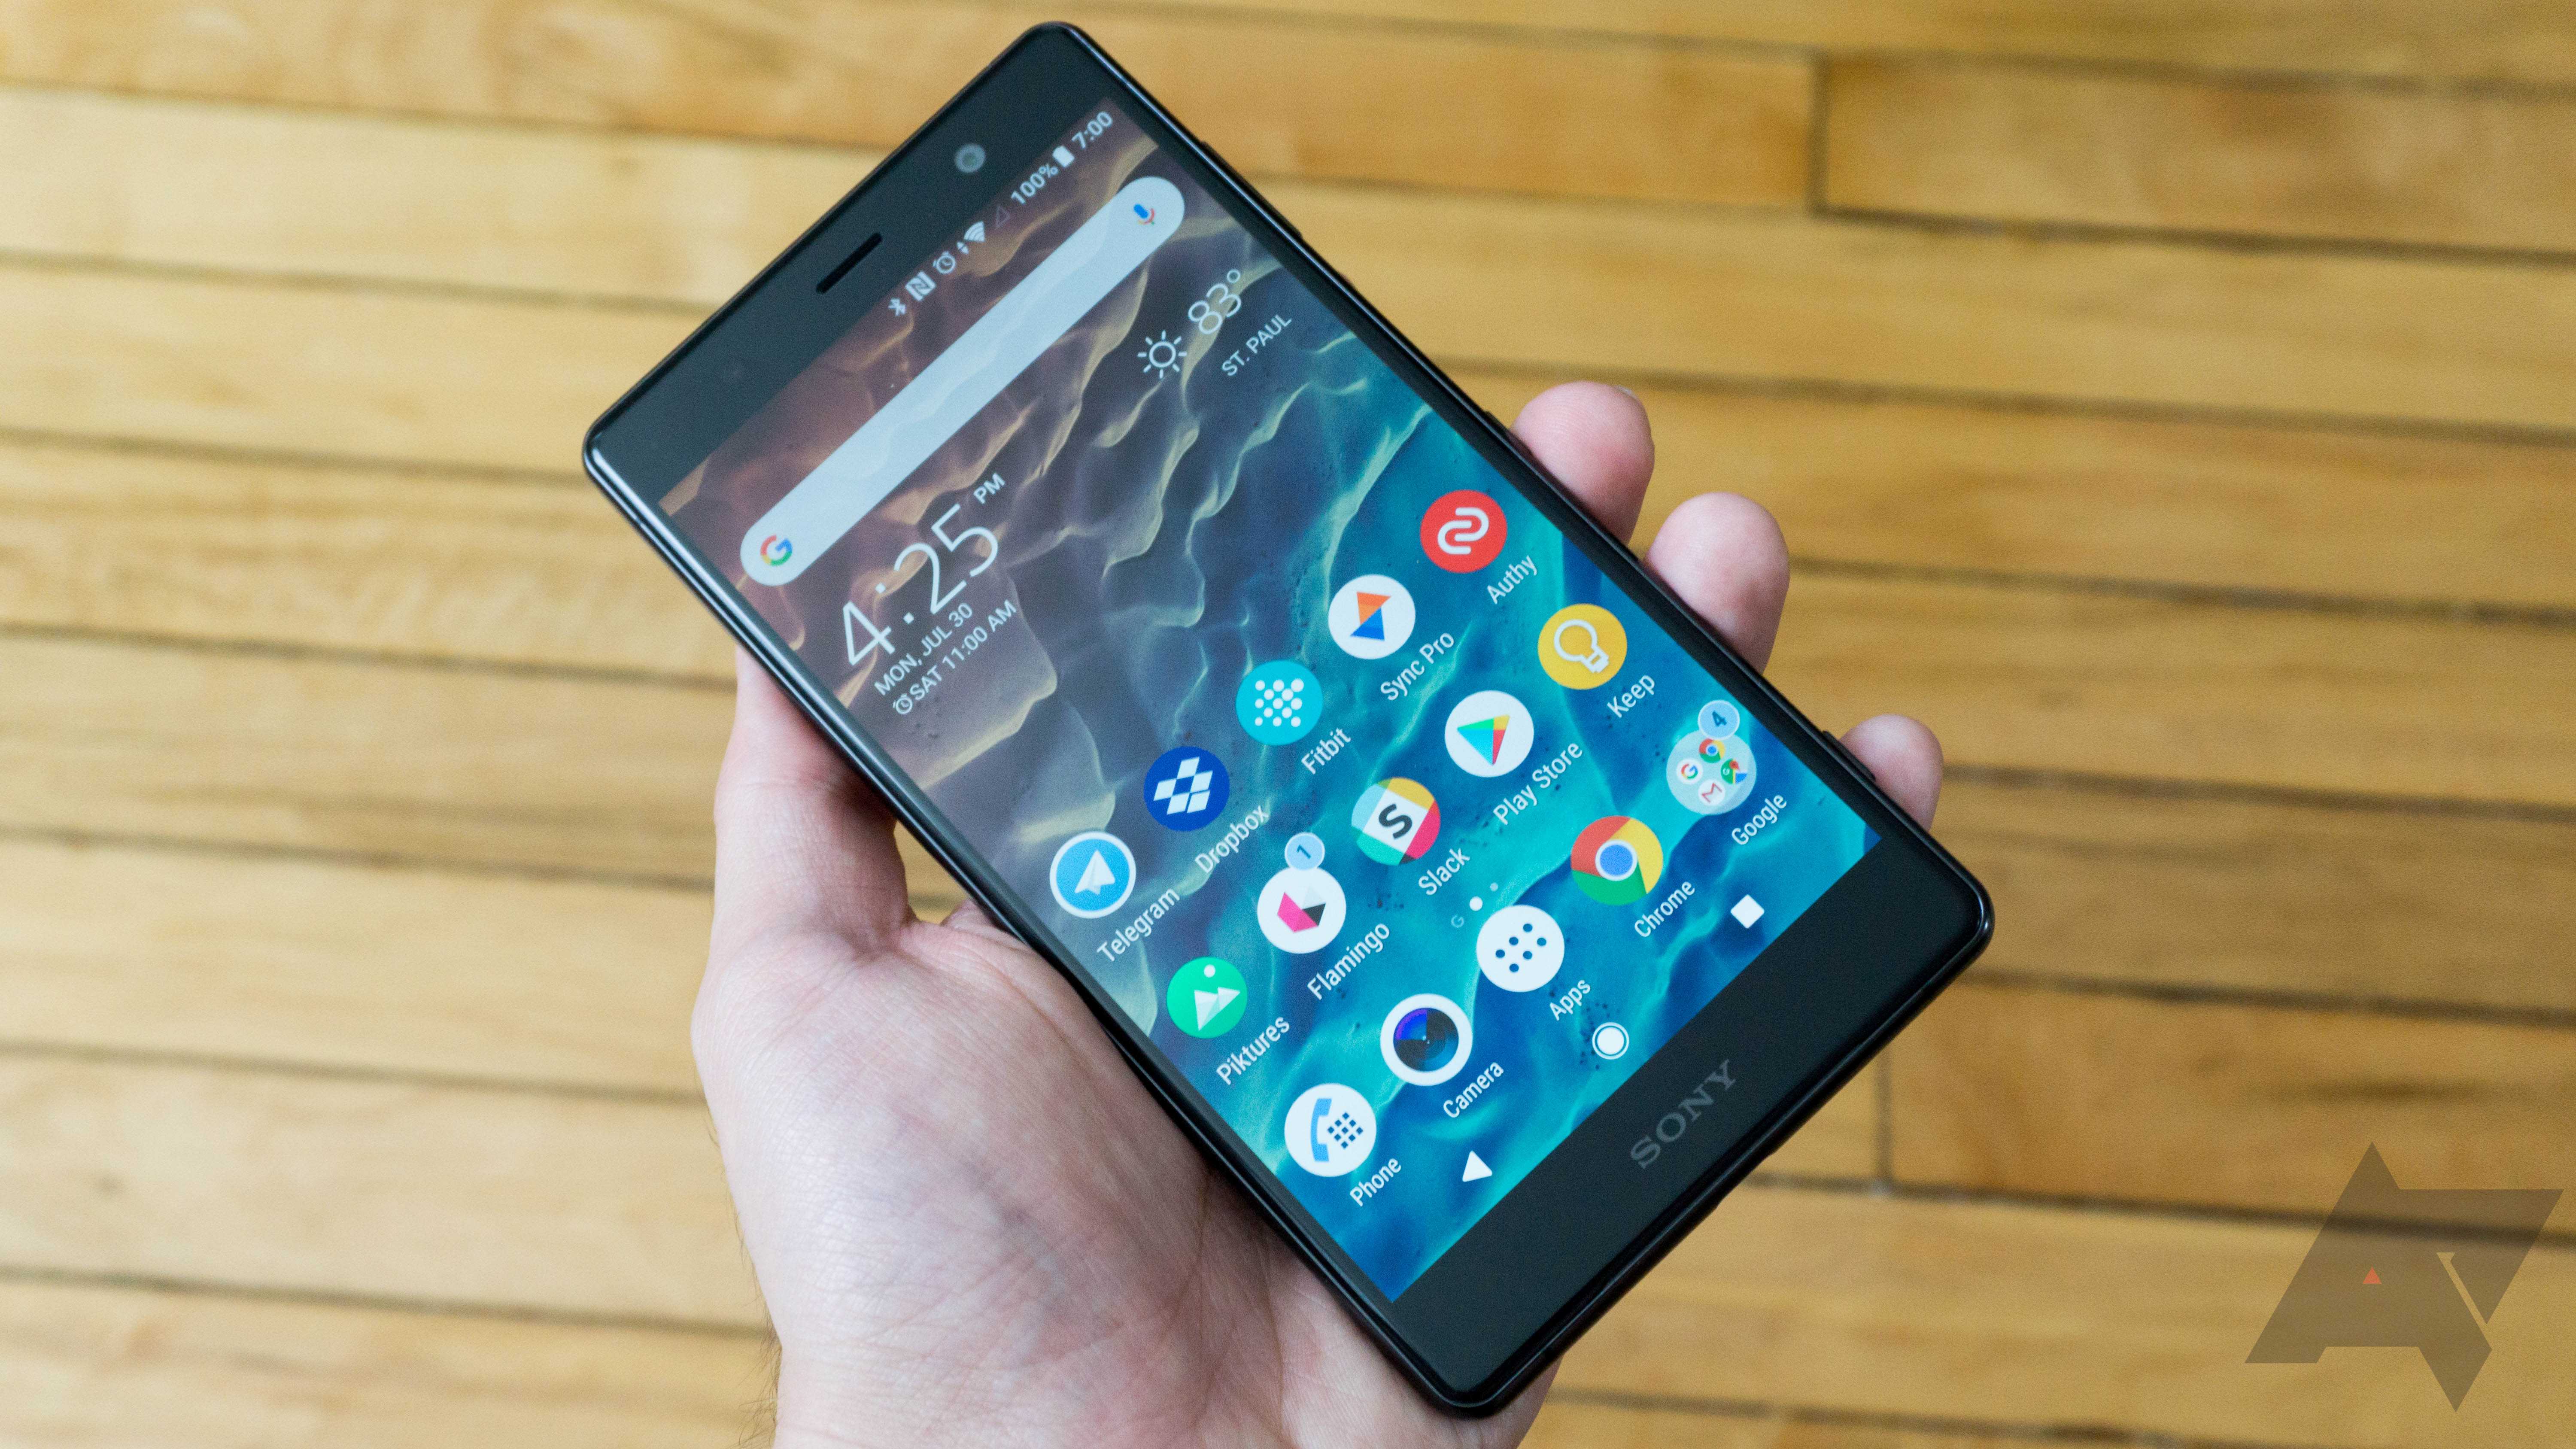 Sony's smaller 2018 flagship, the Xperia XZ2 Compact, is now